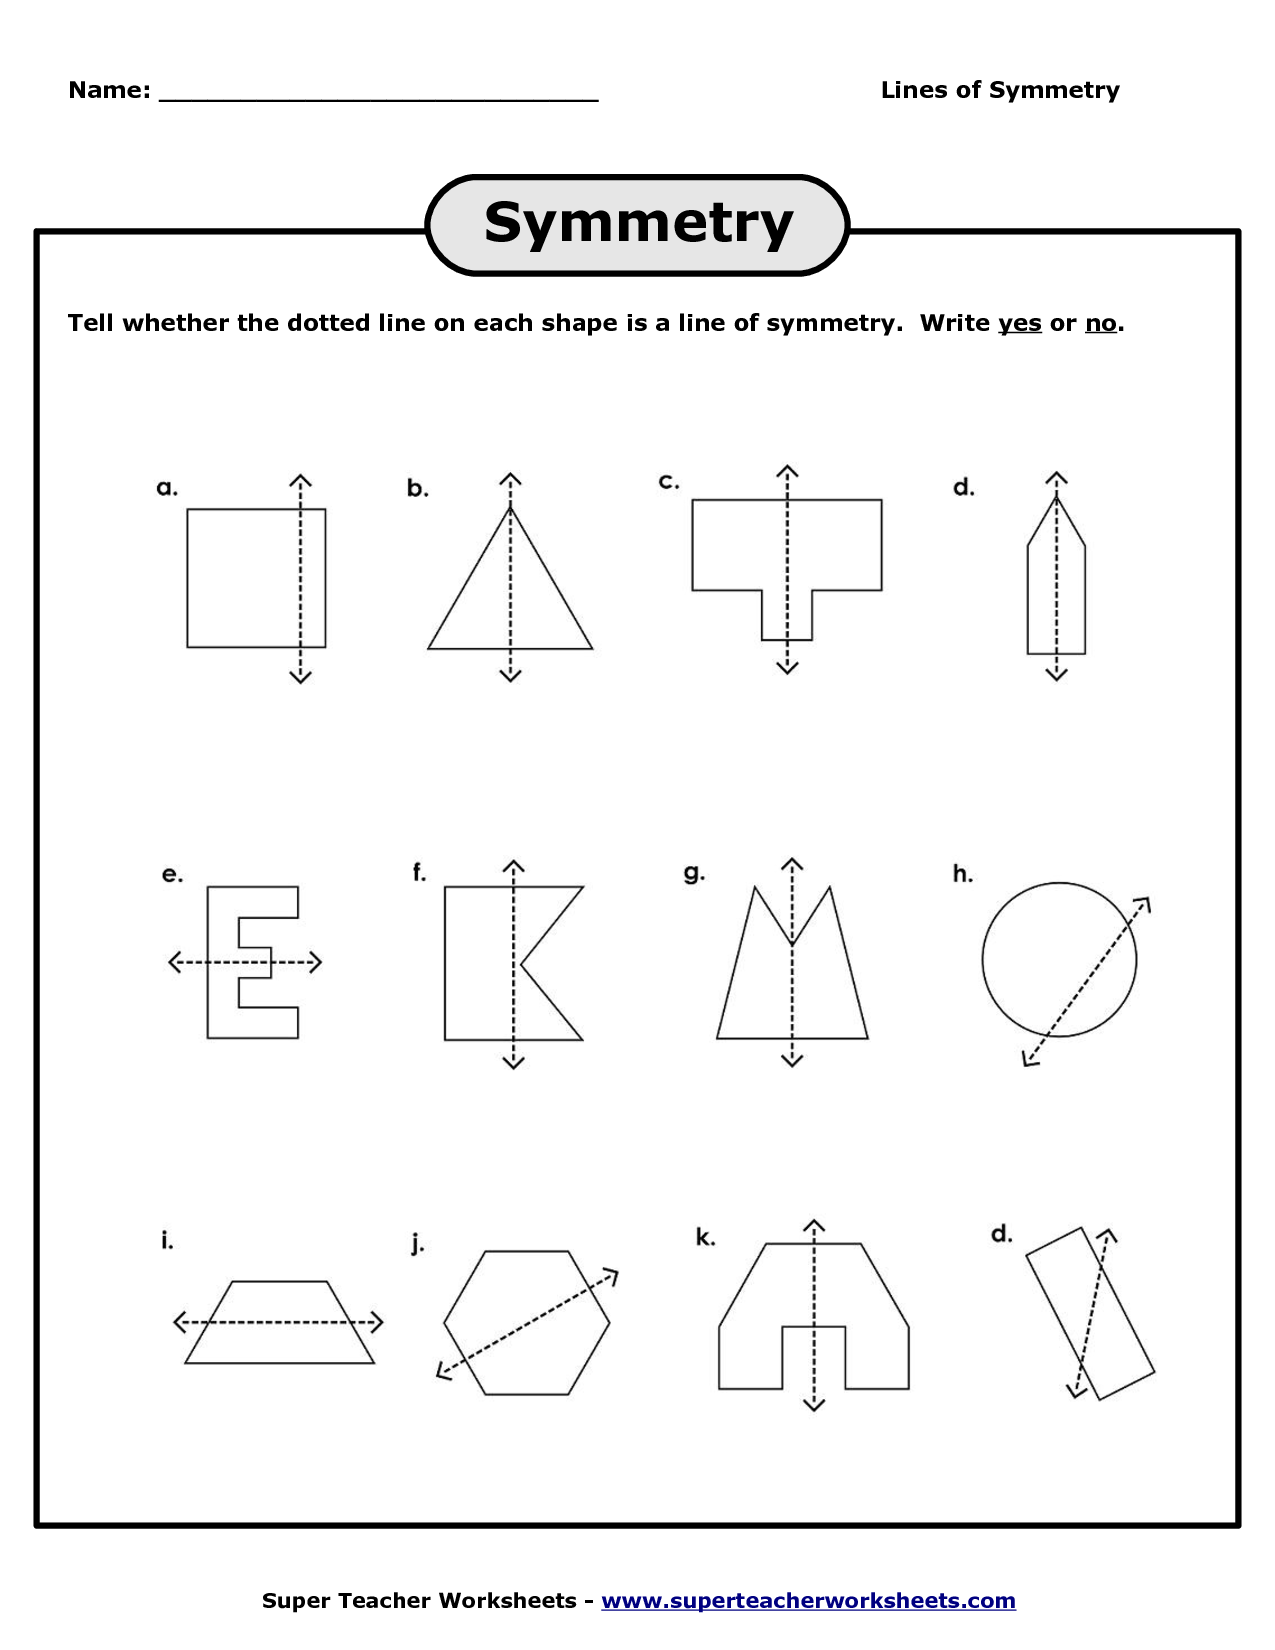 worksheet Area Of A Polygon Worksheet worksheet rotational symmetry worksheets grass fedjp area of polygons free mathsrotationalsymmetry mathsrotationalsymmetryworksheets